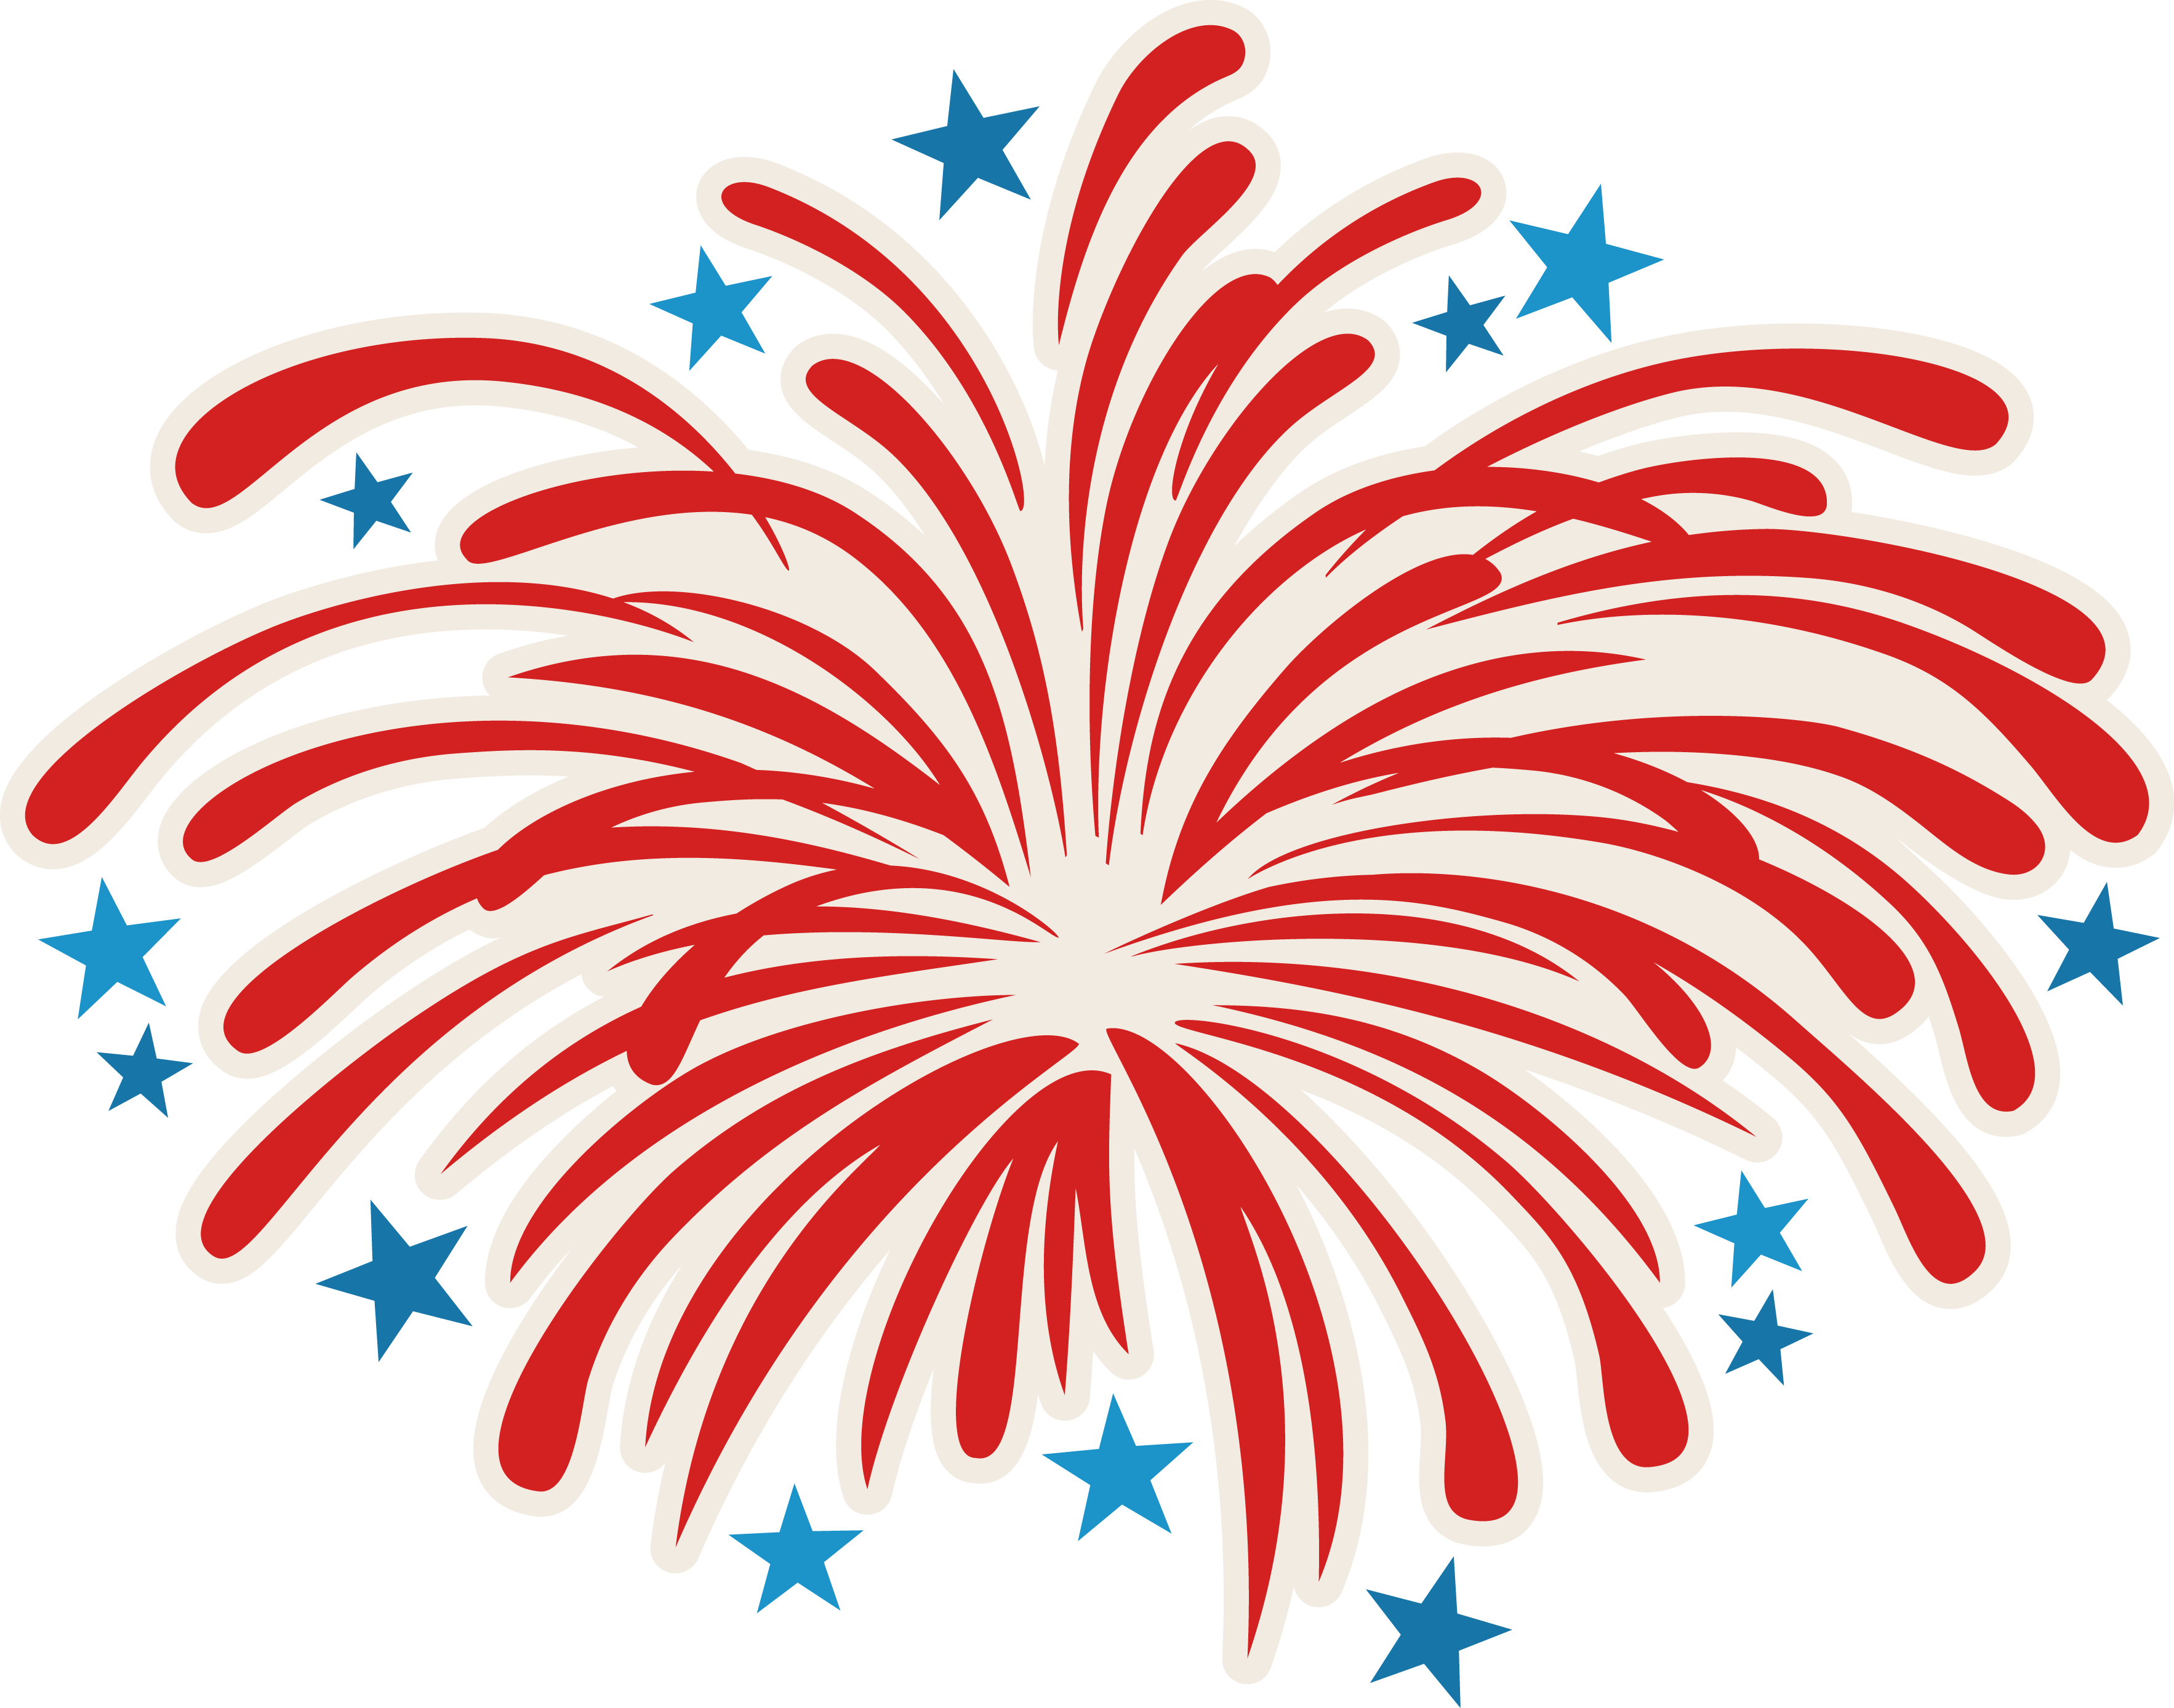 Firecracker clip art clipart images gallery for free.